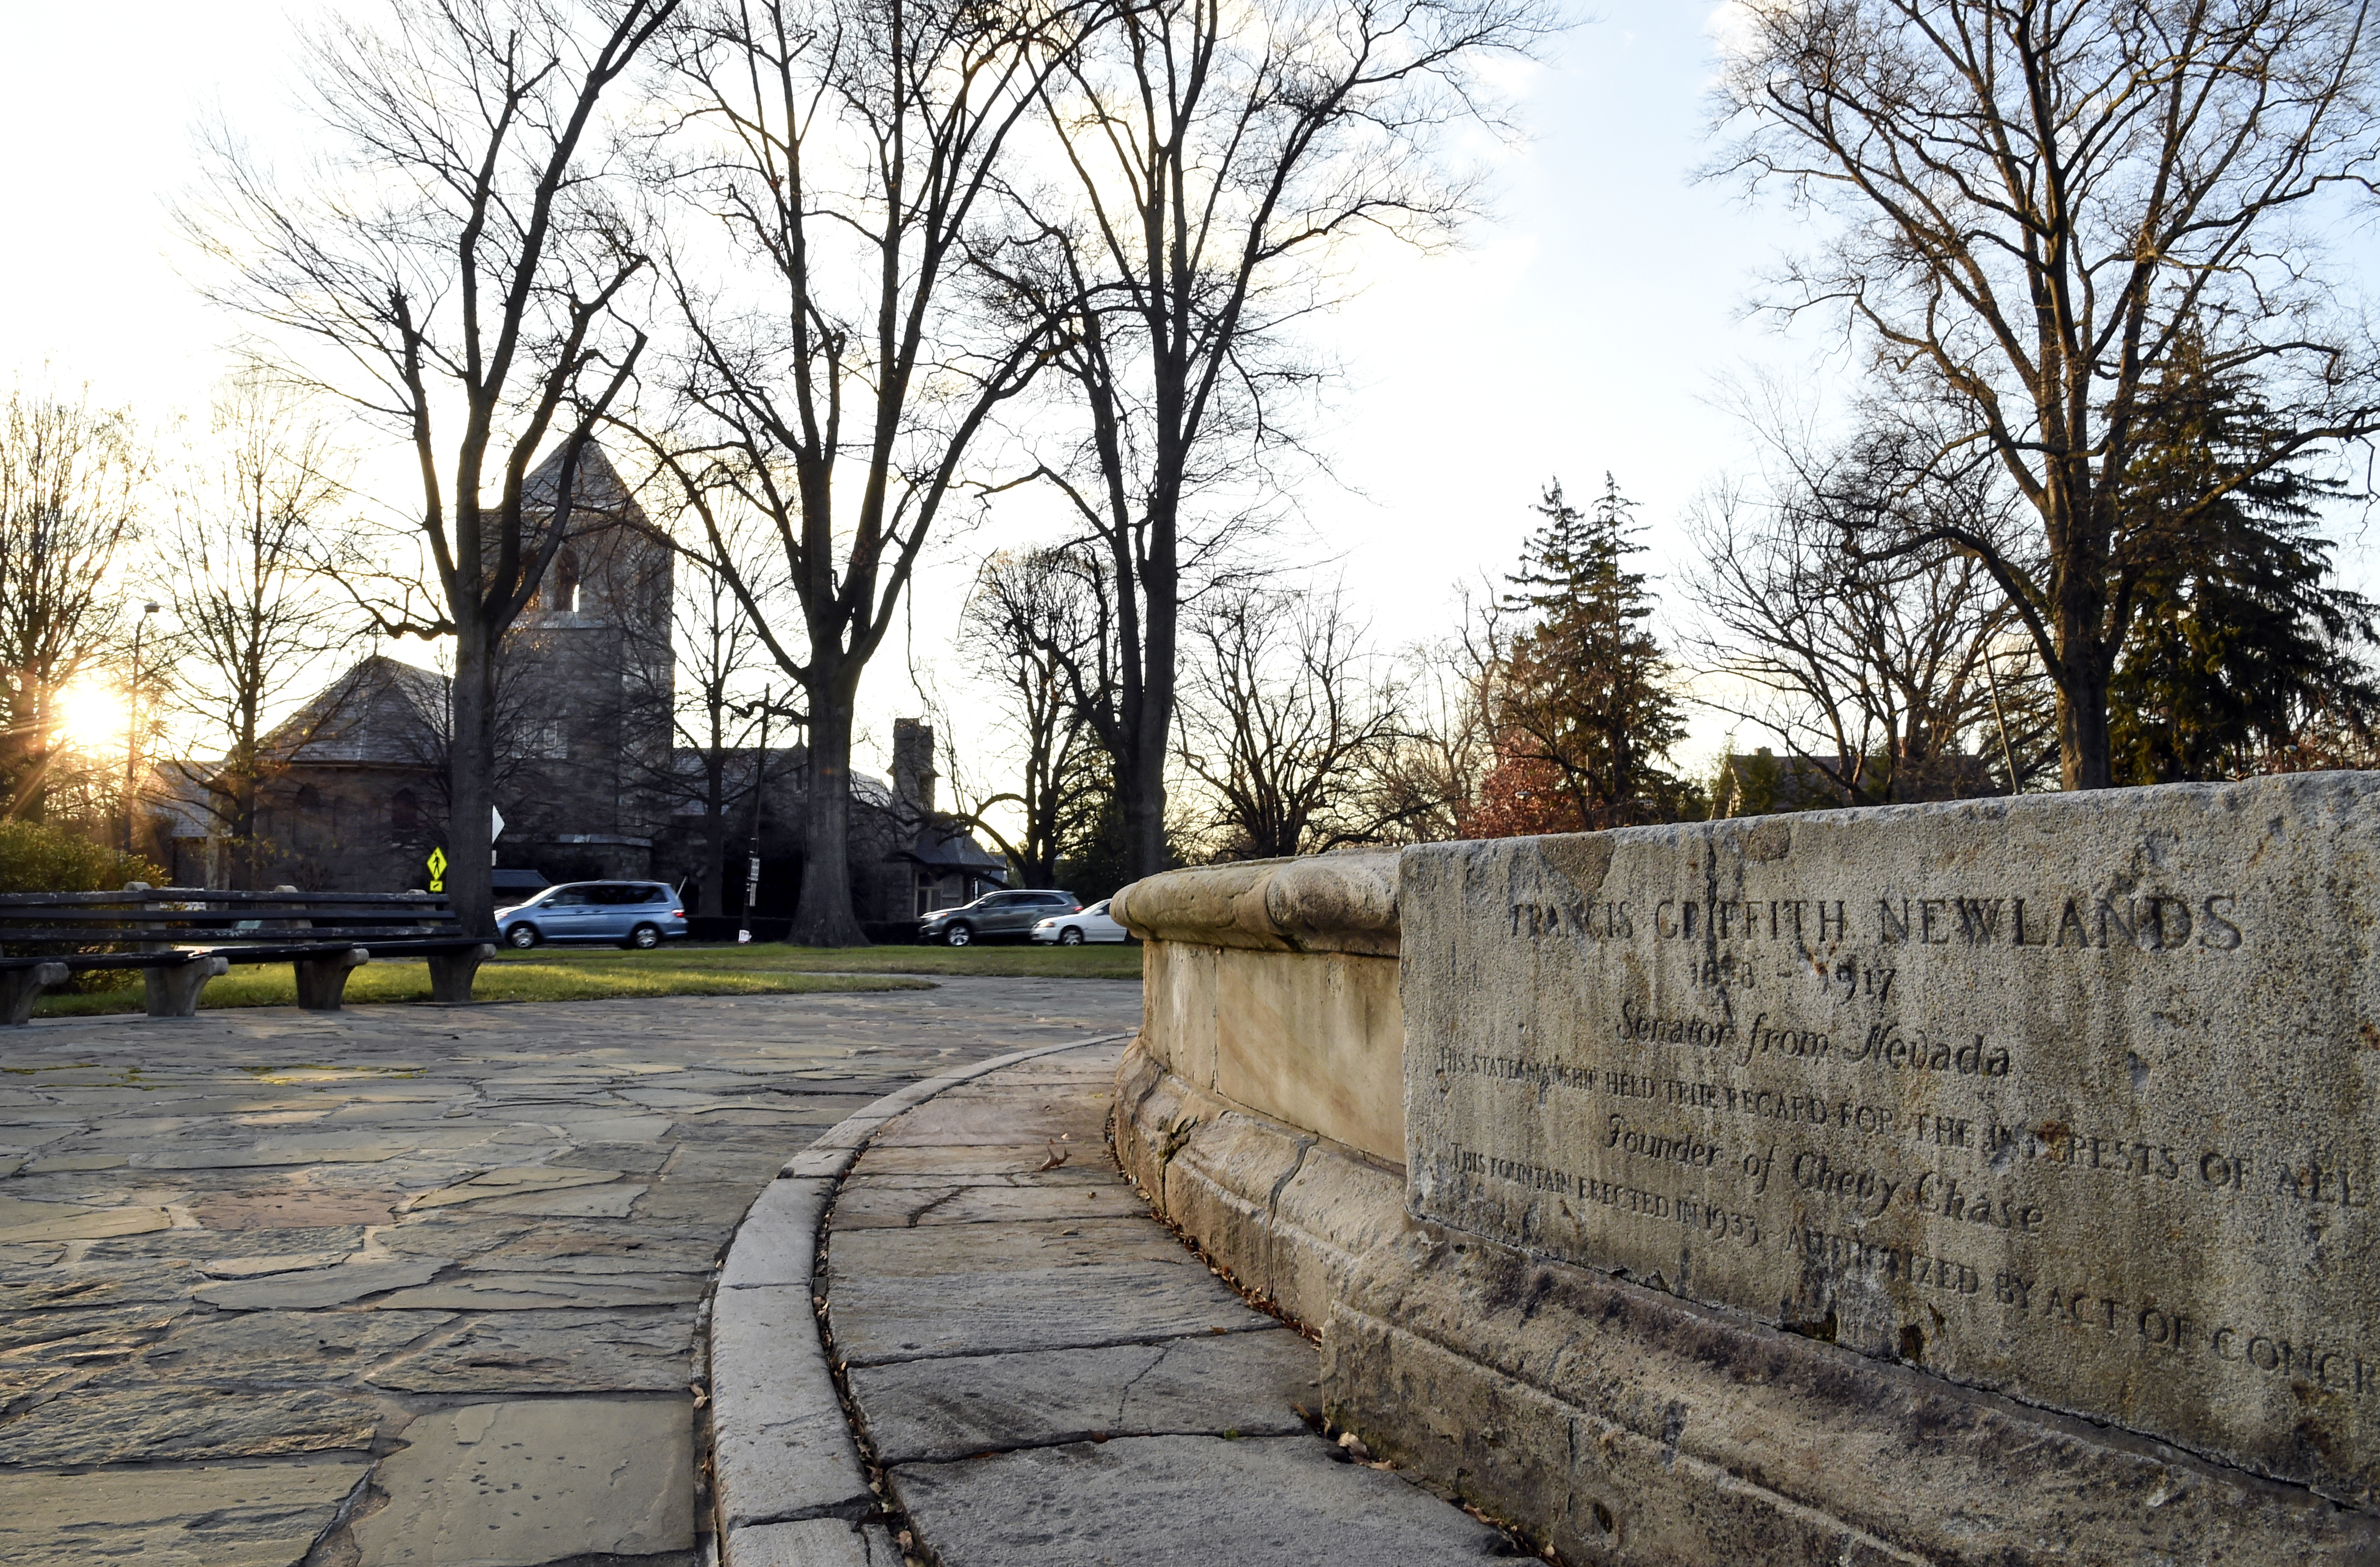 """""""His statesmanship held true regard for the interests of all men,"""" reads the inscription on the Francis Griffith Newlands Memorial Fountain, erected in 1933. (Toni L. Sandys/The Washington Post)"""